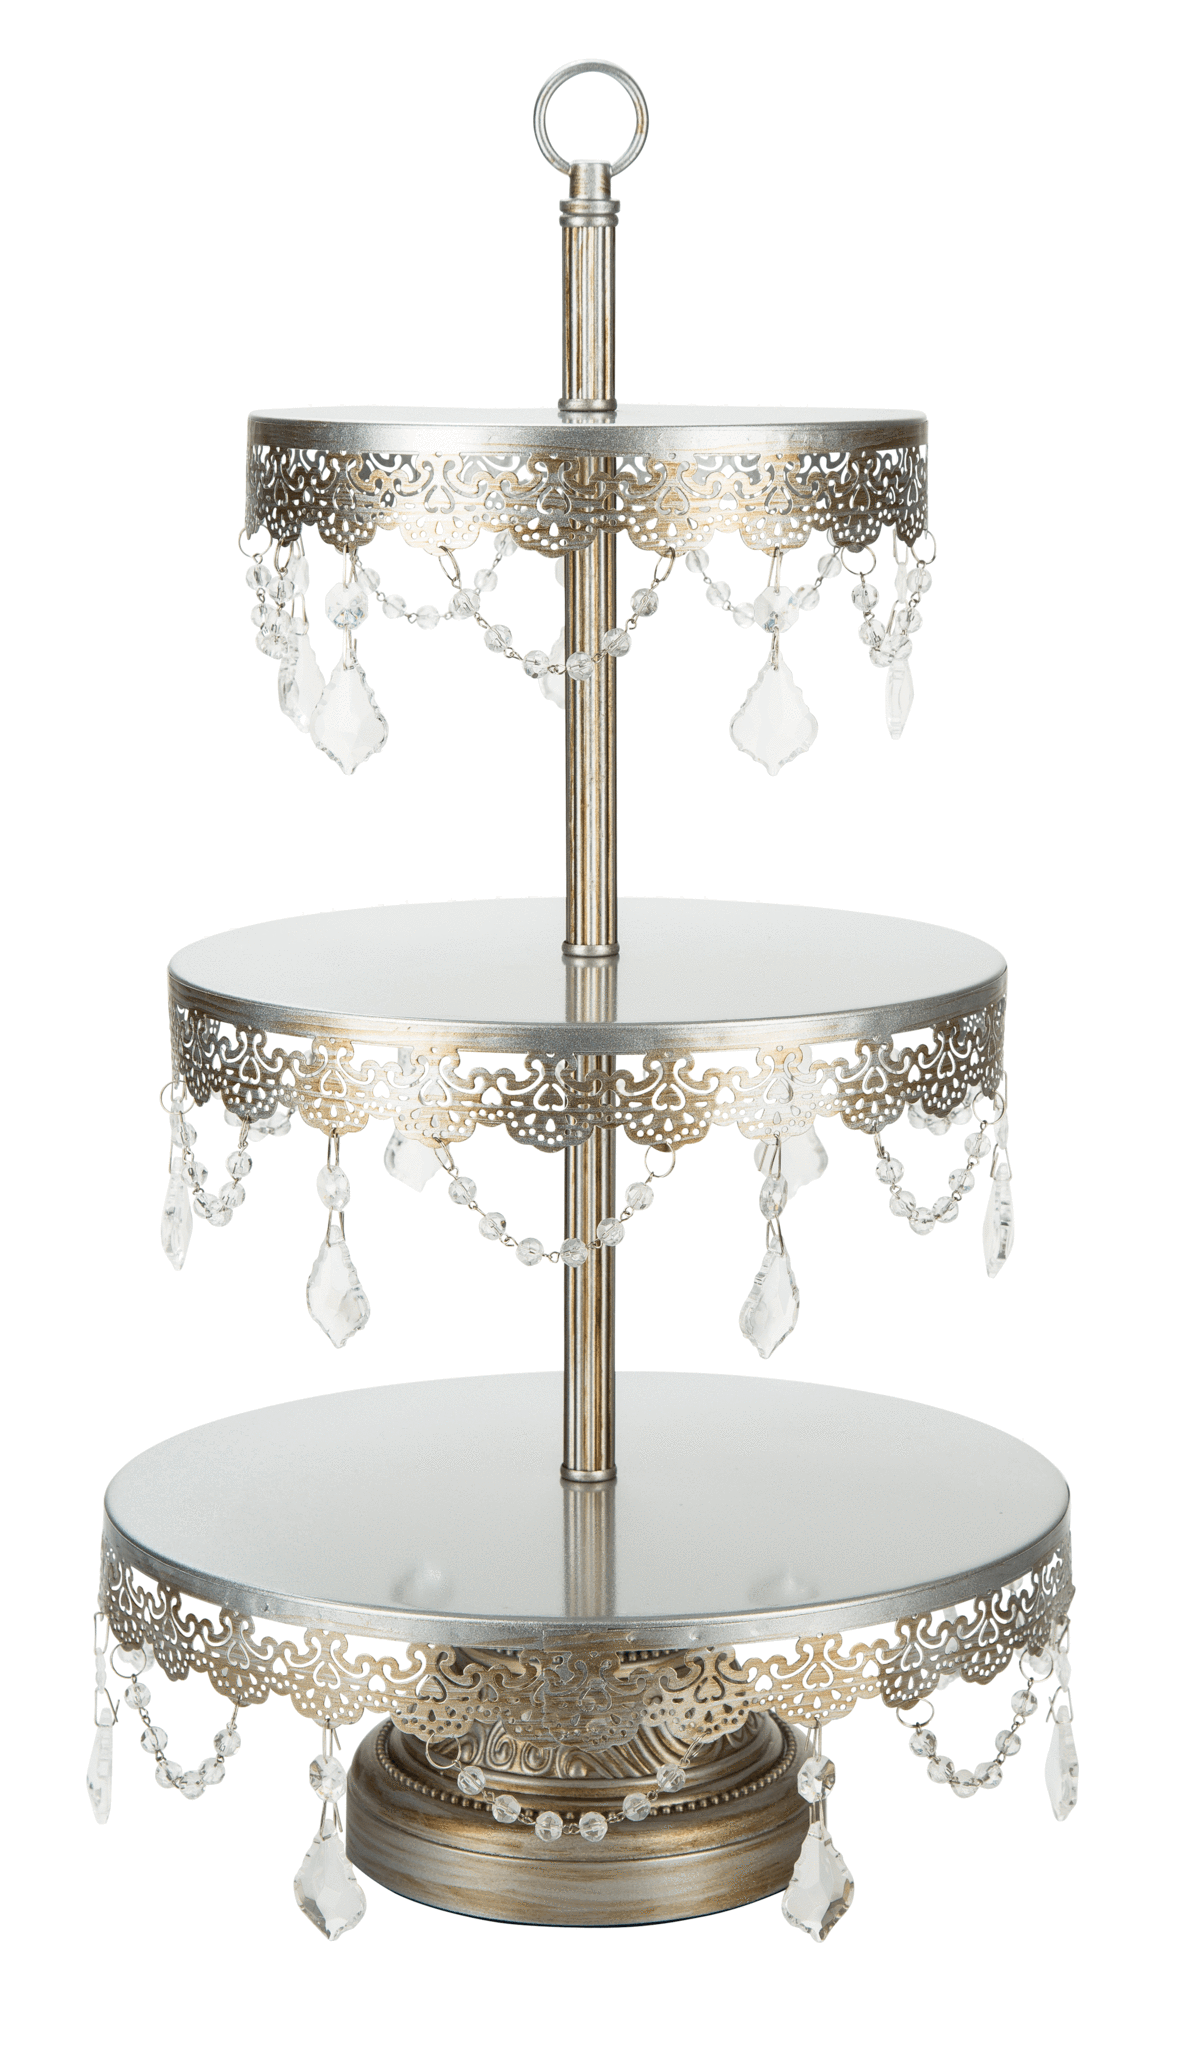 3 Tier Crystal Draped Dessert Stand Silver Sophia Collection